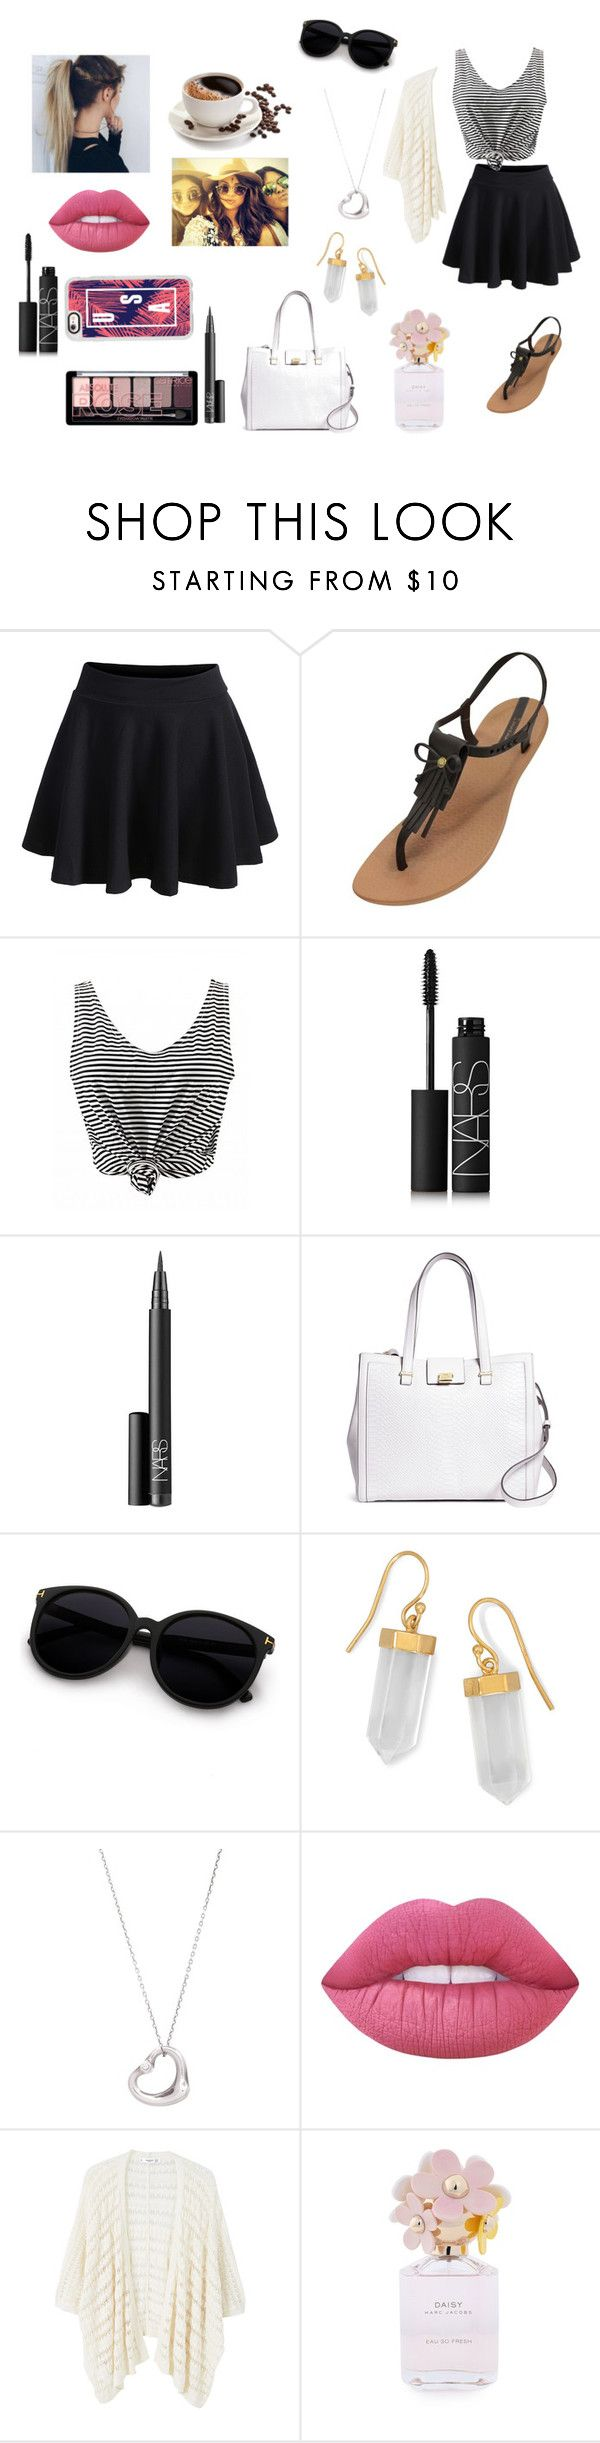 """""""Lunch with friends"""" by netballzoe5656 ❤ liked on Polyvore featuring WithChic, IPANEMA, NARS Cosmetics, Brooks Brothers, BillyTheTree, Tiffany & Co., Lime Crime, MANGO, Kendall + Kylie and Marc Jacobs"""